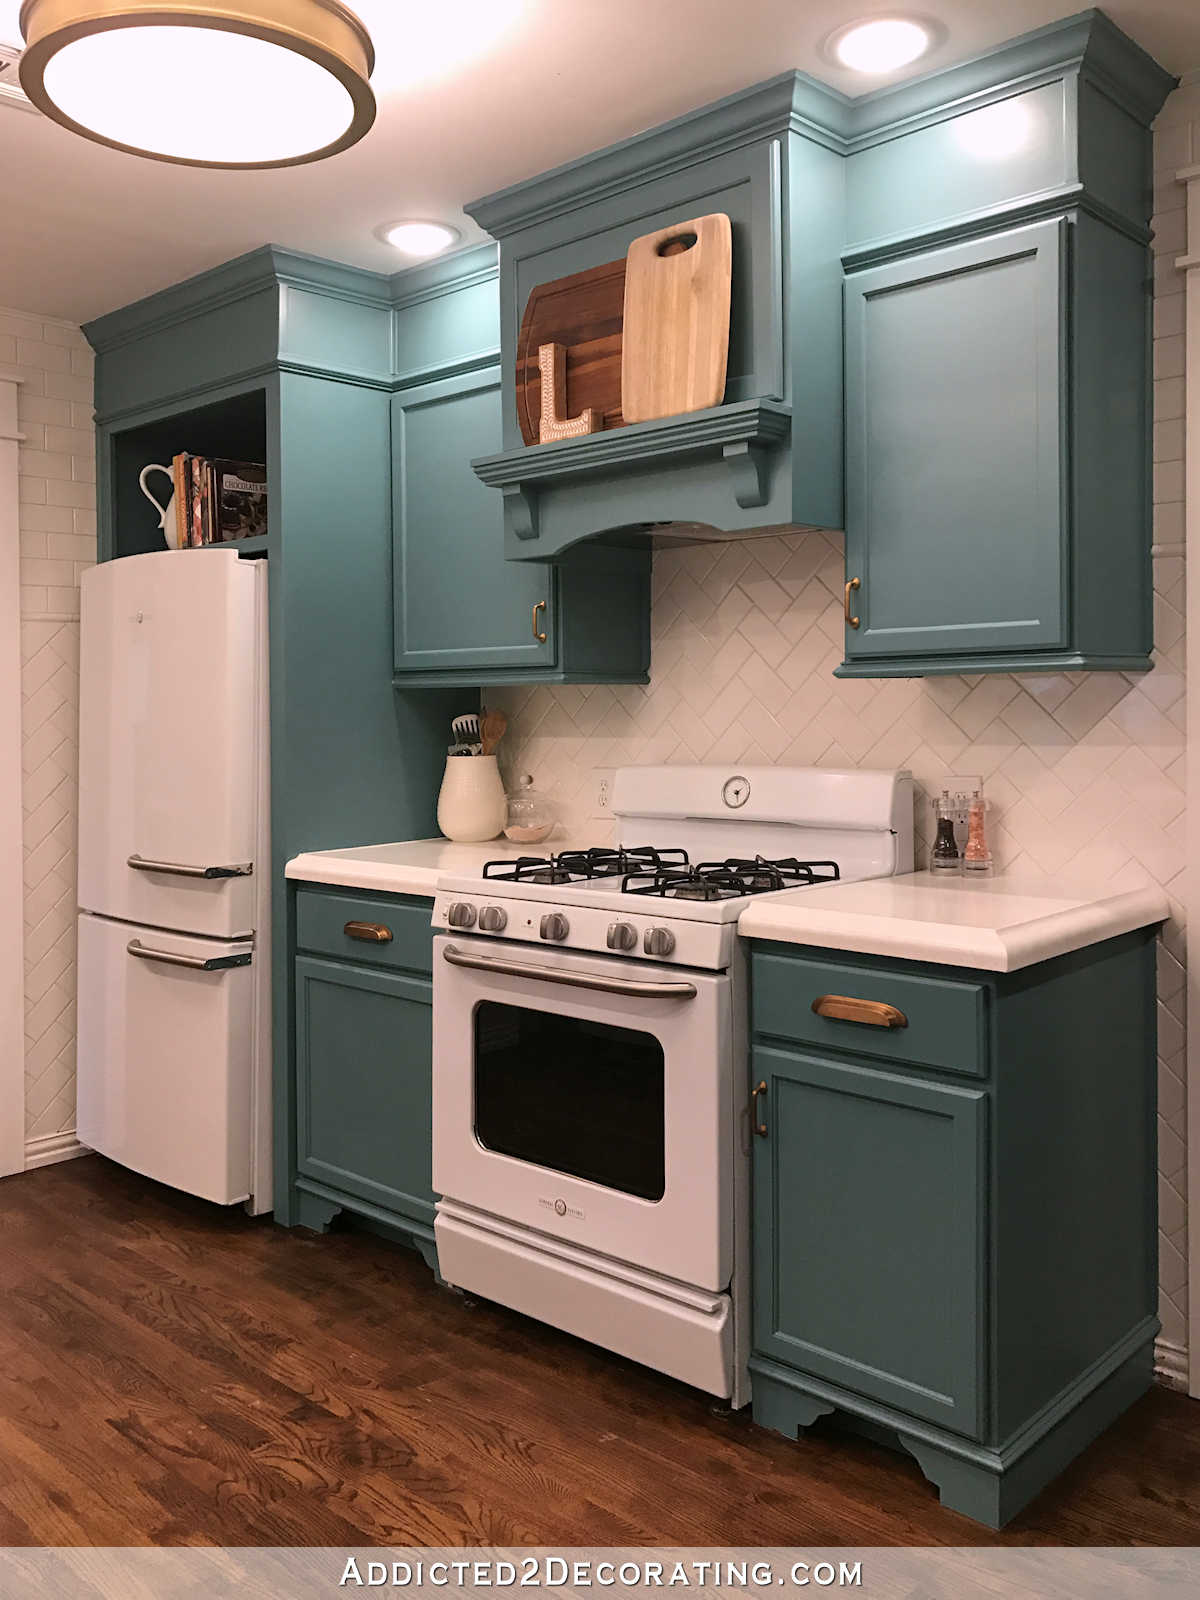 My Finished For Now Kitchen From Kelly Green To Teal